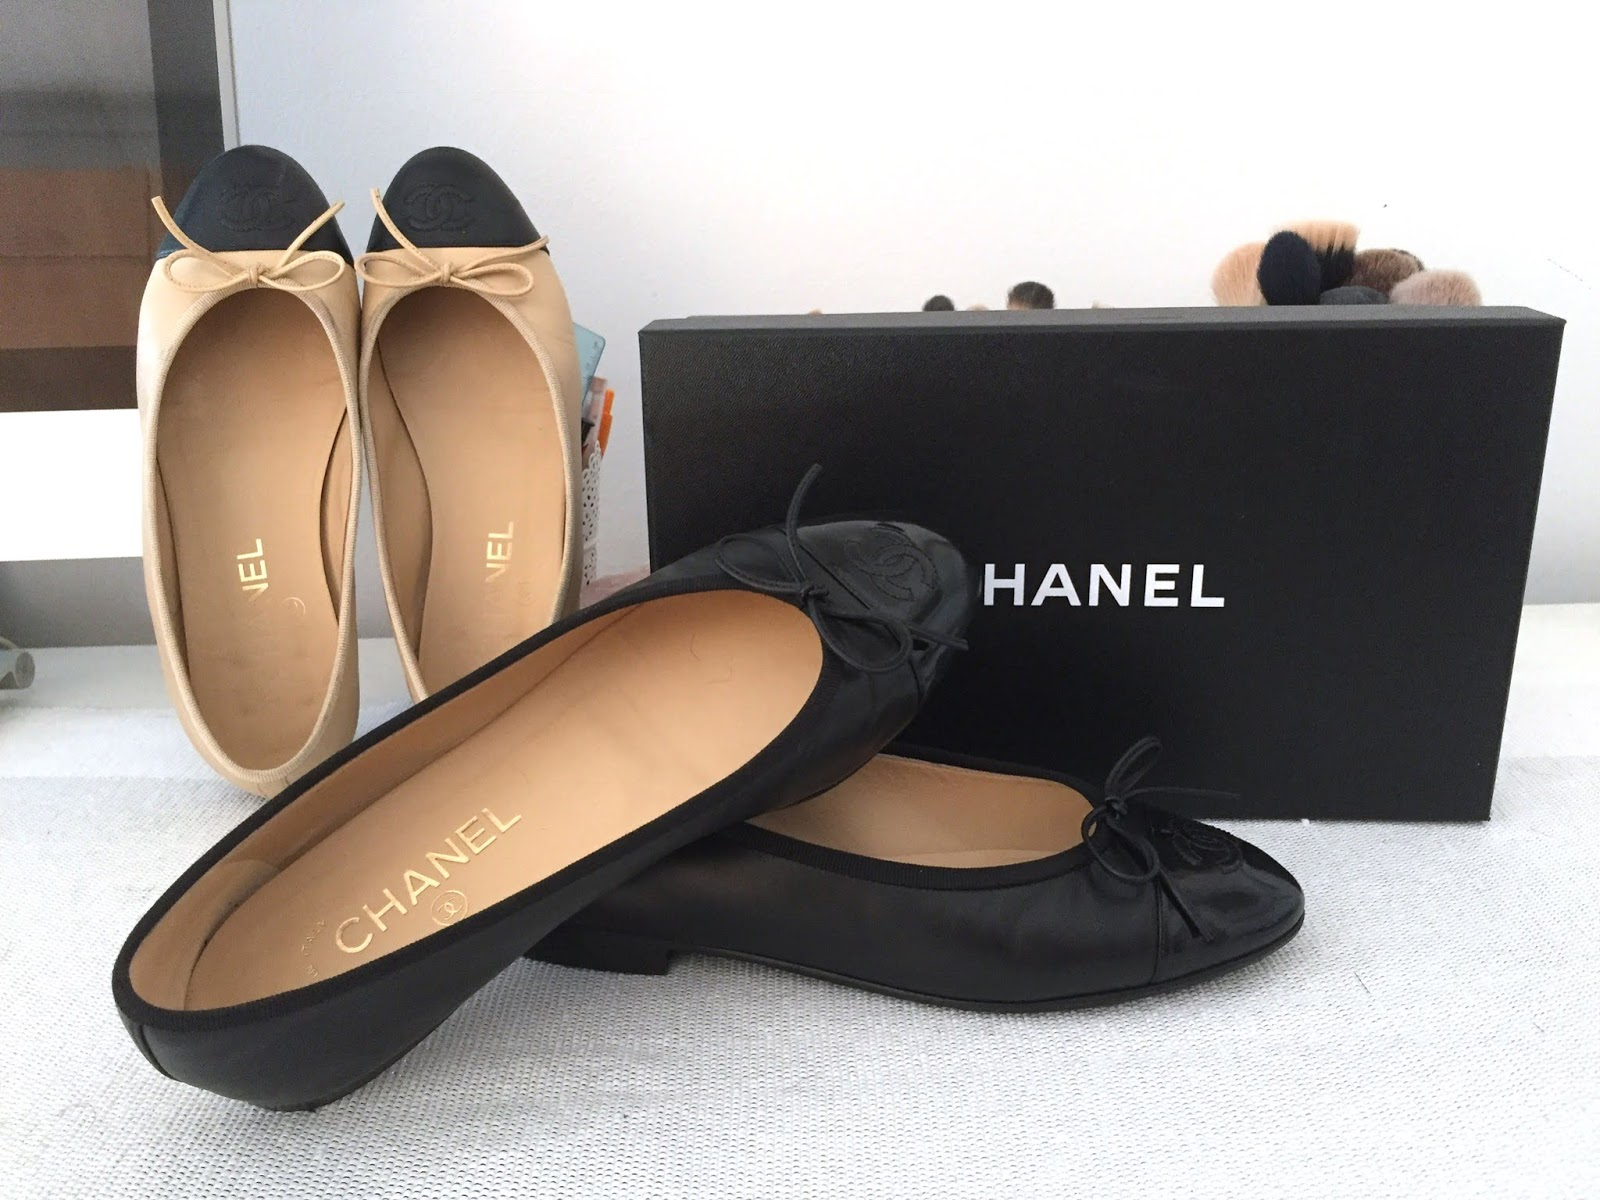 77ab9be1cbd0b My very first pair of designer shoes were the classic Chanel Ballet Flats  in lambskin, beige with black toe cap. I loved them right when I tried them  on in ...